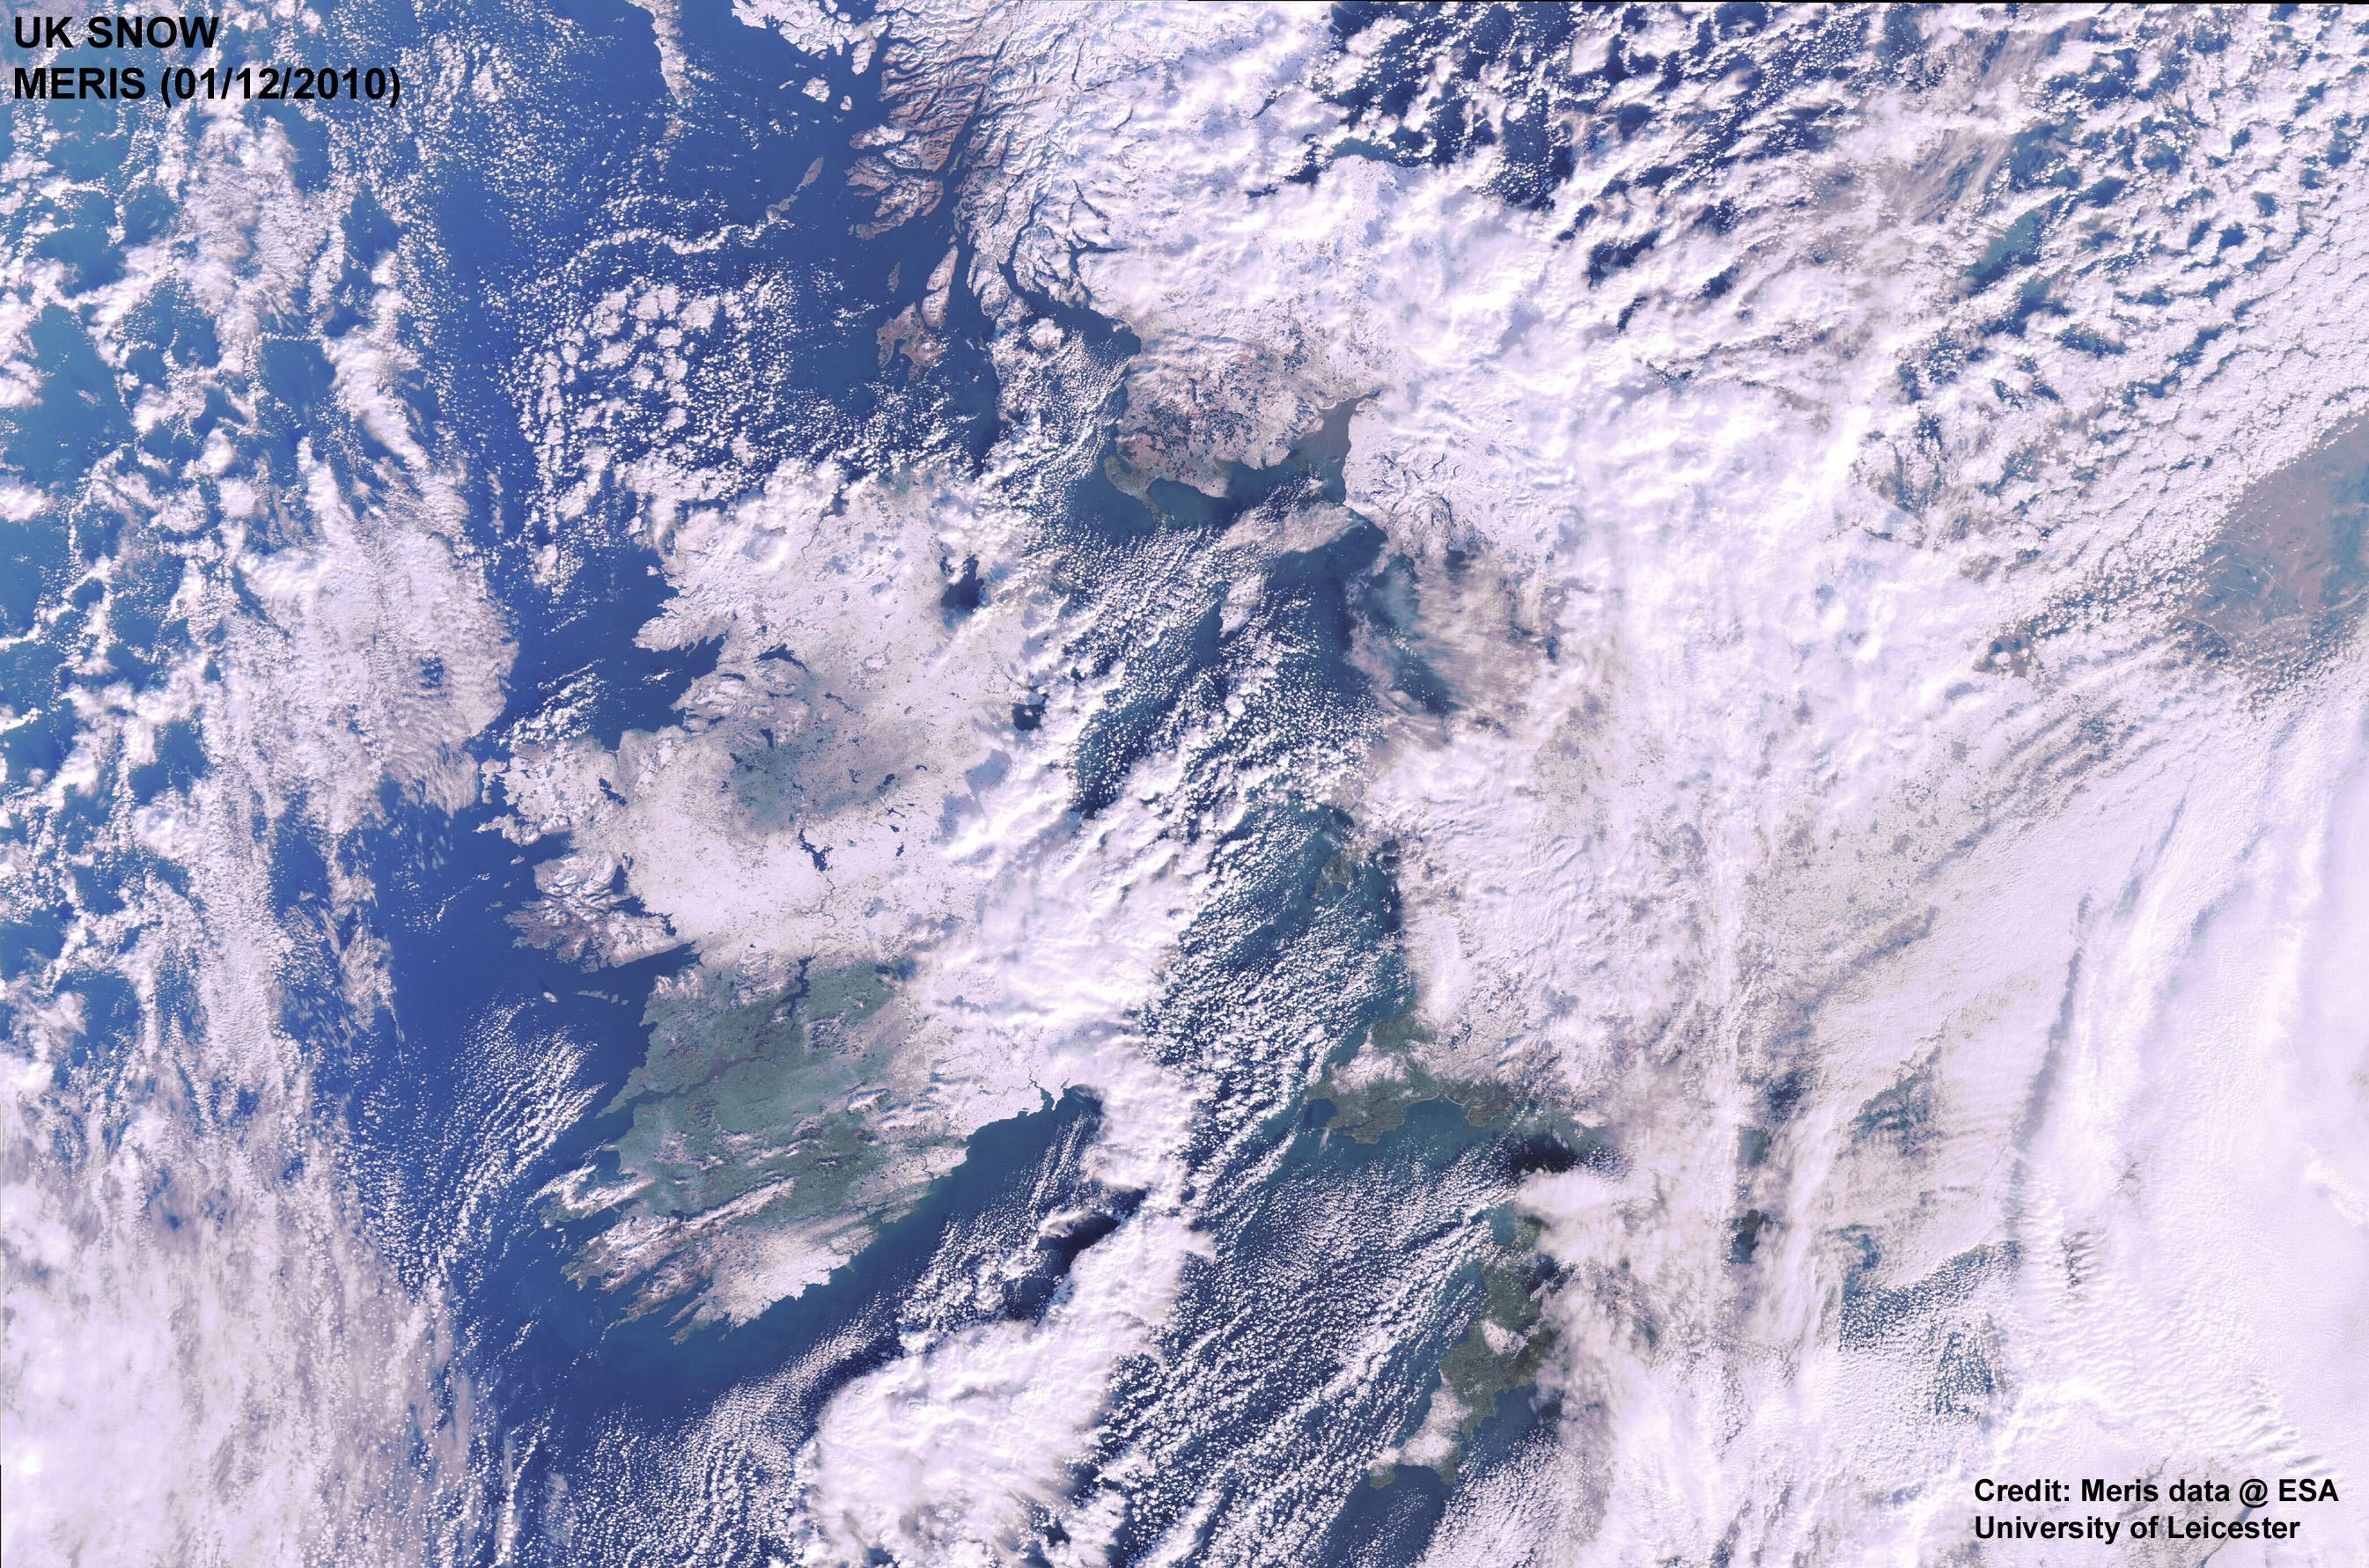 This is an image of snow-bound UK from space by MERIS on Dec. 1.  Credit: MERIS 01 December 2010. Credit: MERIS data @ ESA, and University of Leicester